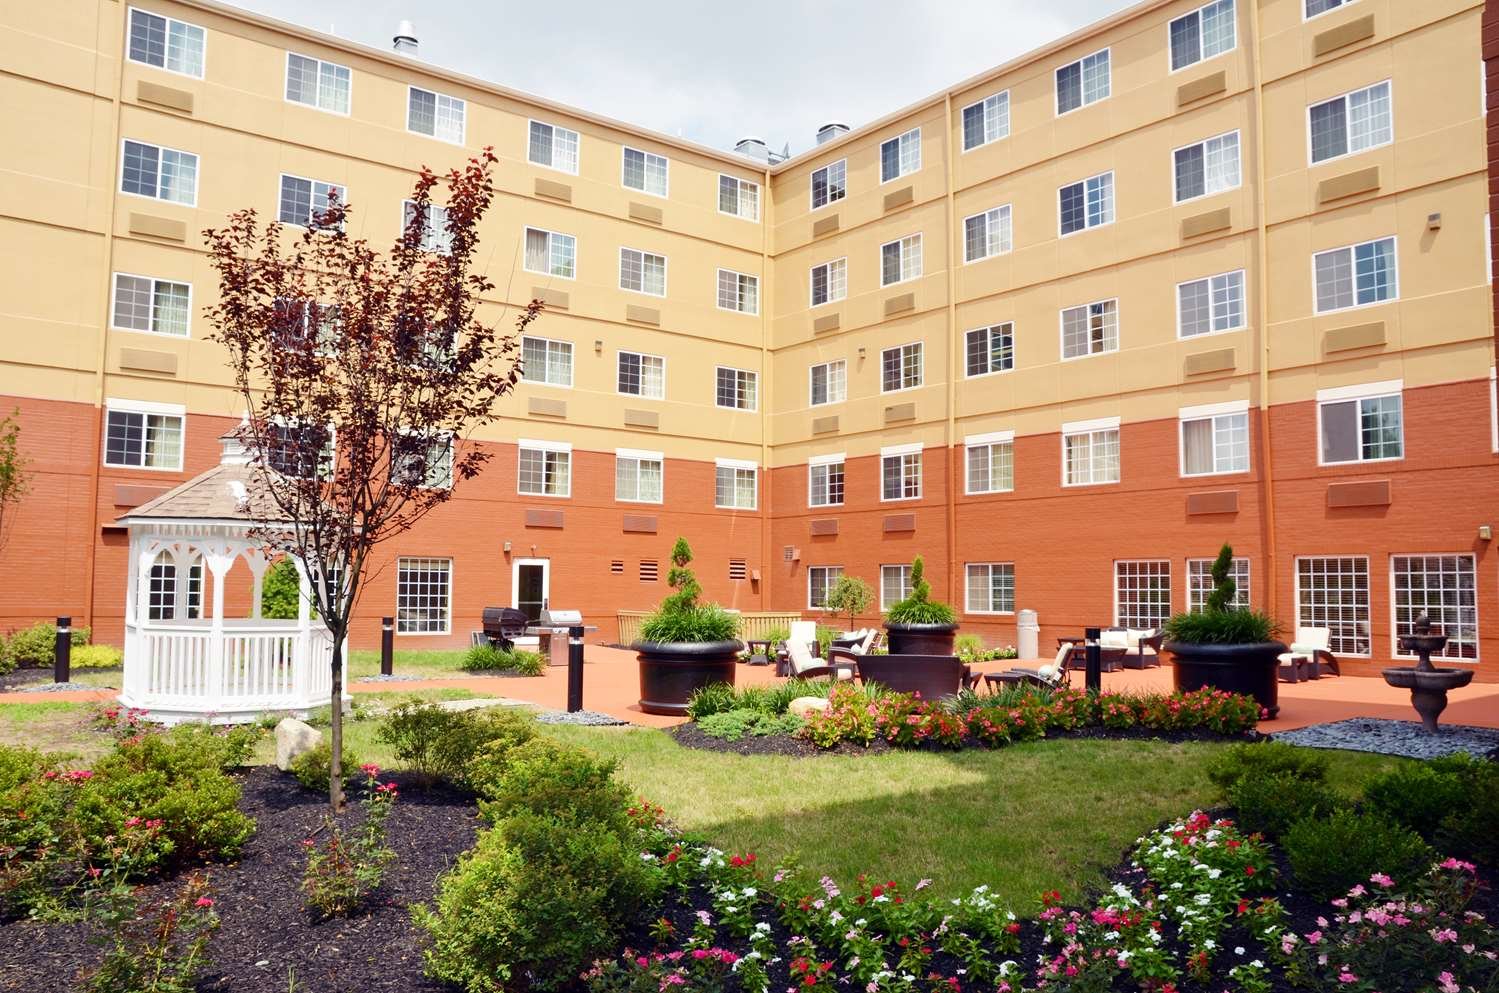 proam - Extended Stay America Hotel Secaucus